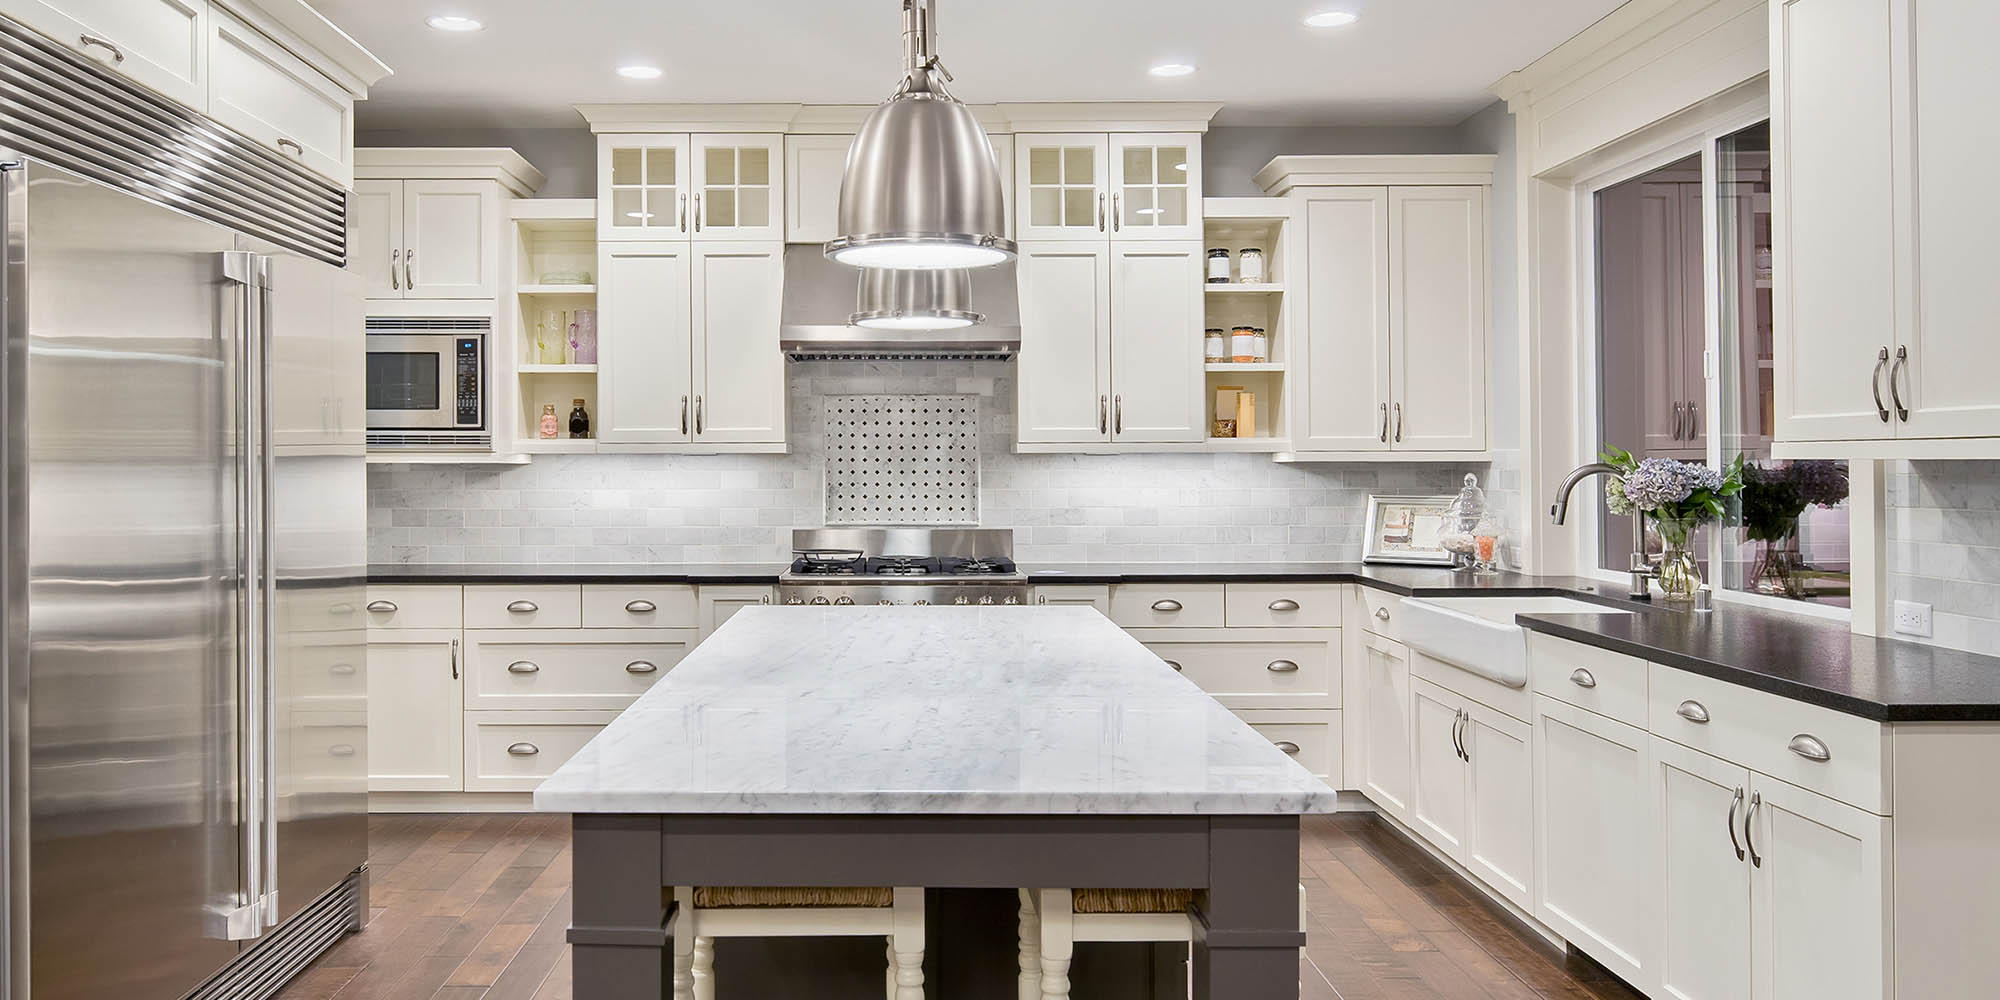 Charmant Indy Custom Stone, Granite Countertops Fishers, Carmel, Noblesville,  Westfield, An Zionsville